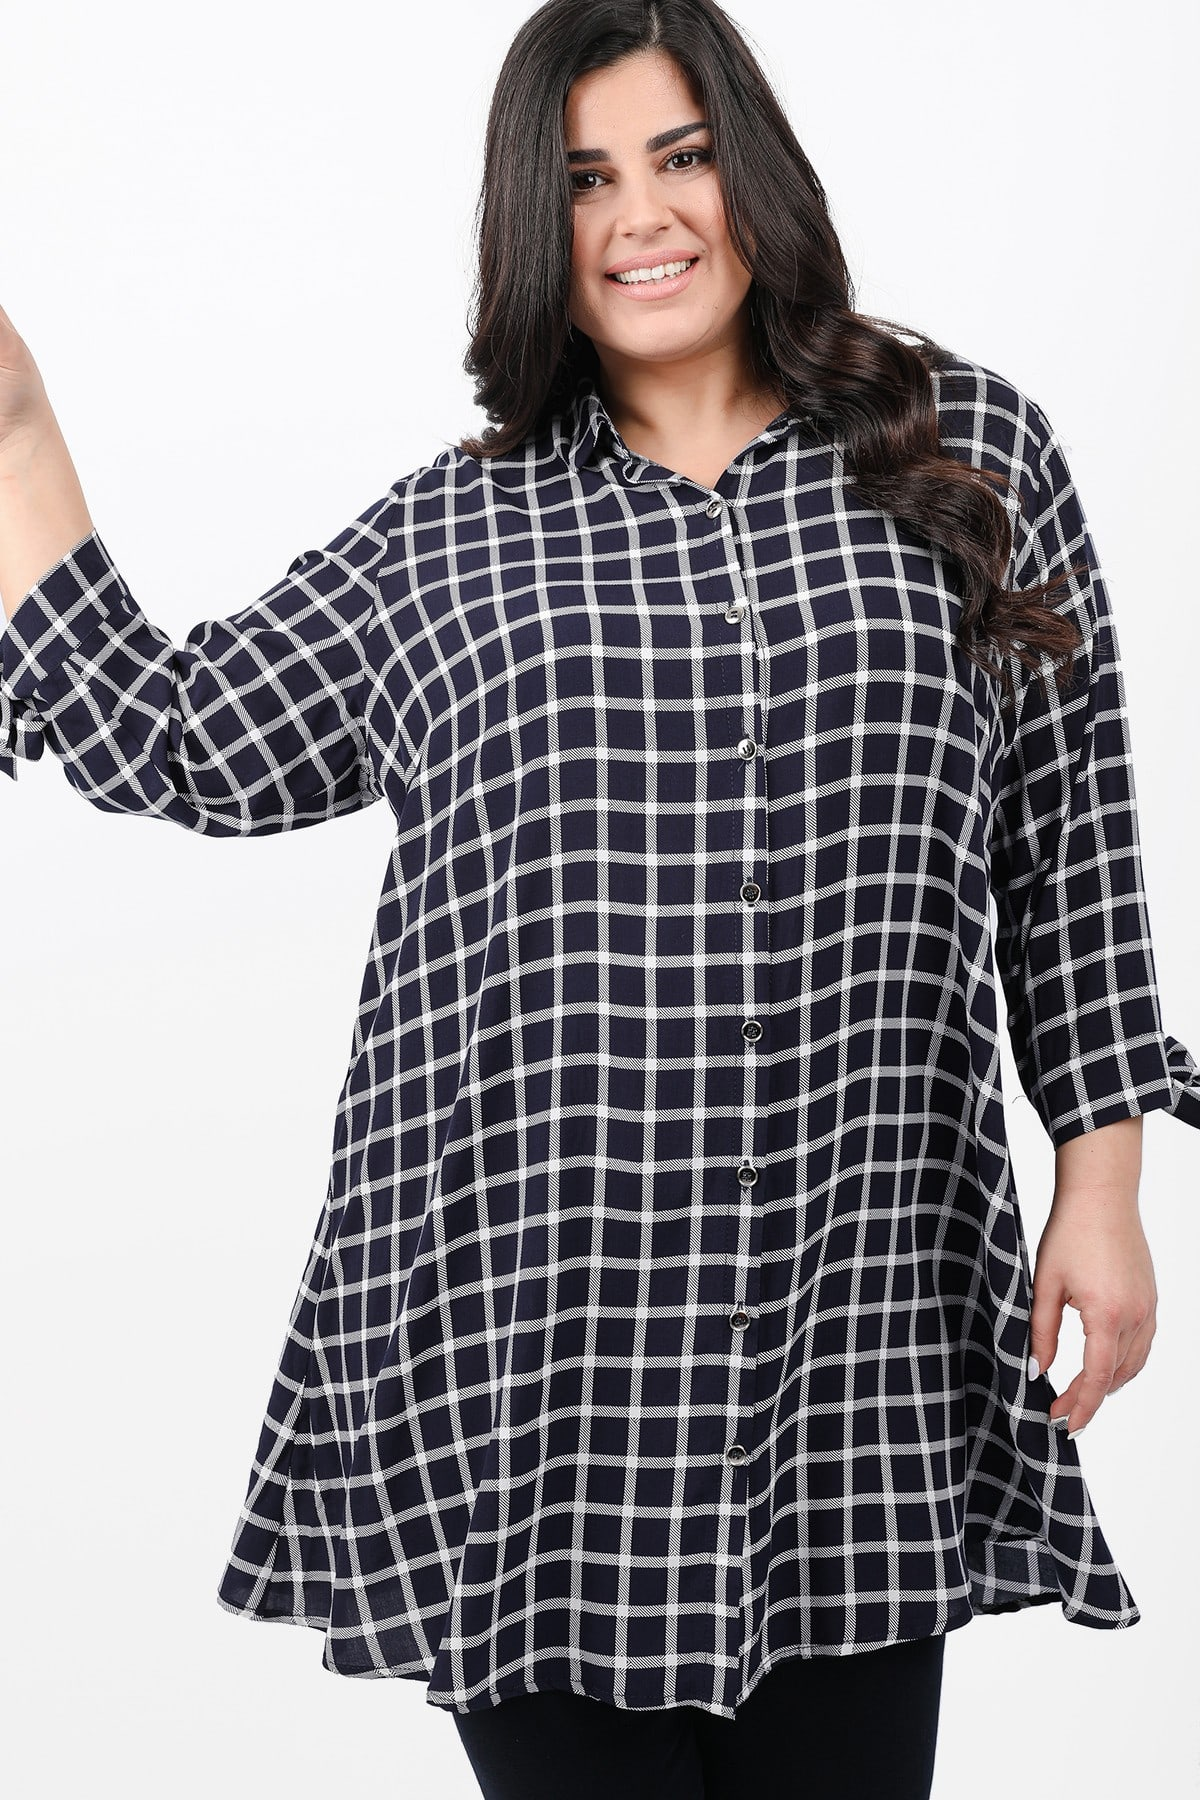 Checkered shirtblouse with ties on the sleeves